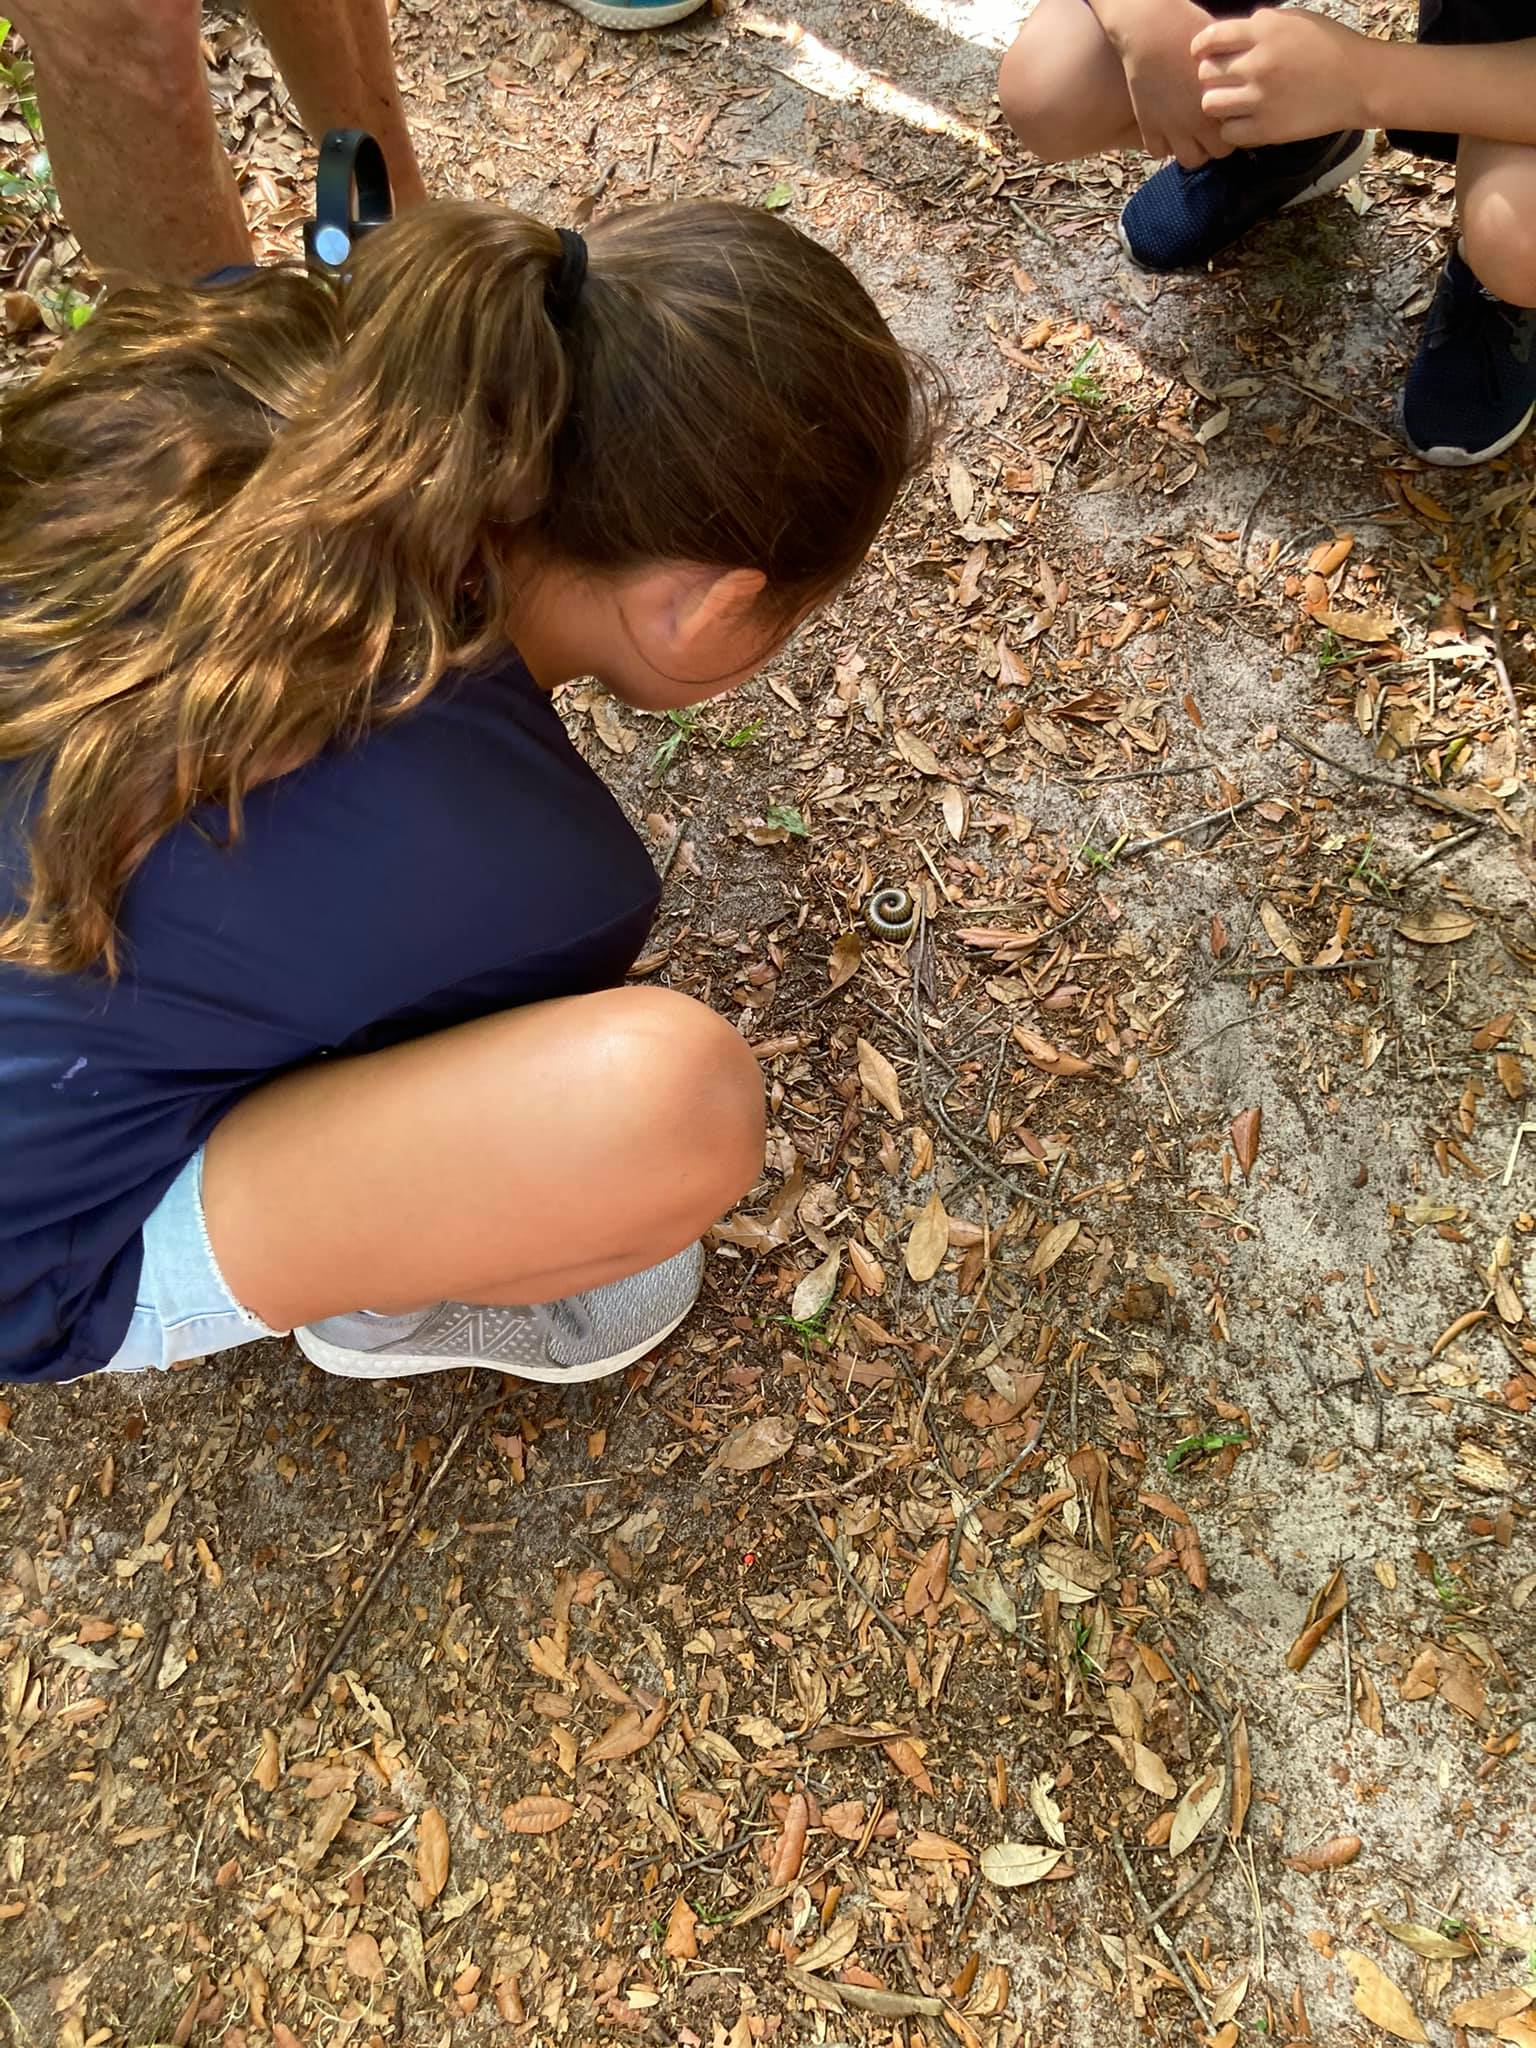 Students checking out a worm they found on one of the trails.